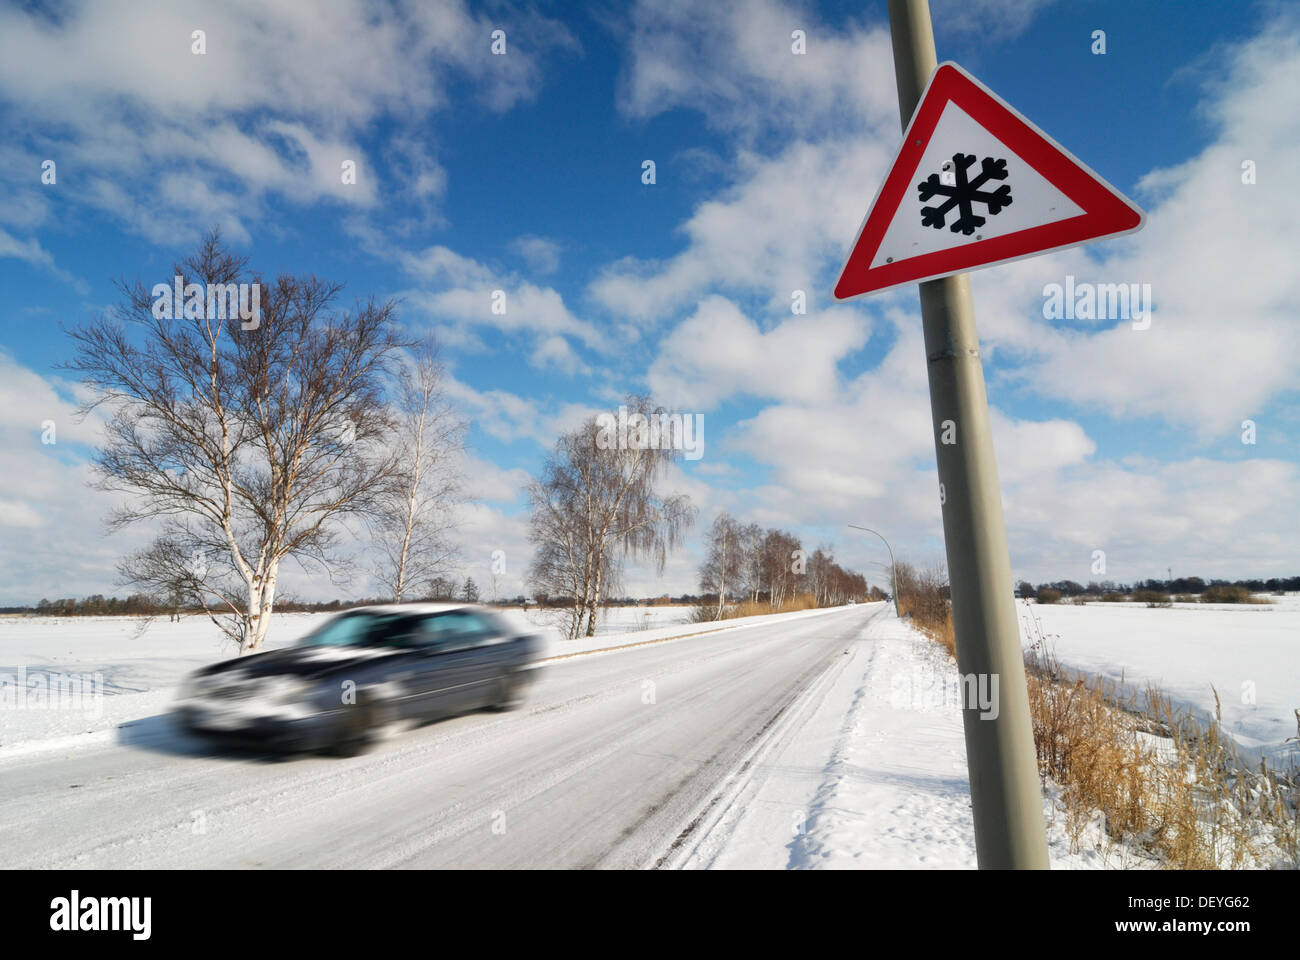 Car on snow-covered roads, slippery roads - Stock Image